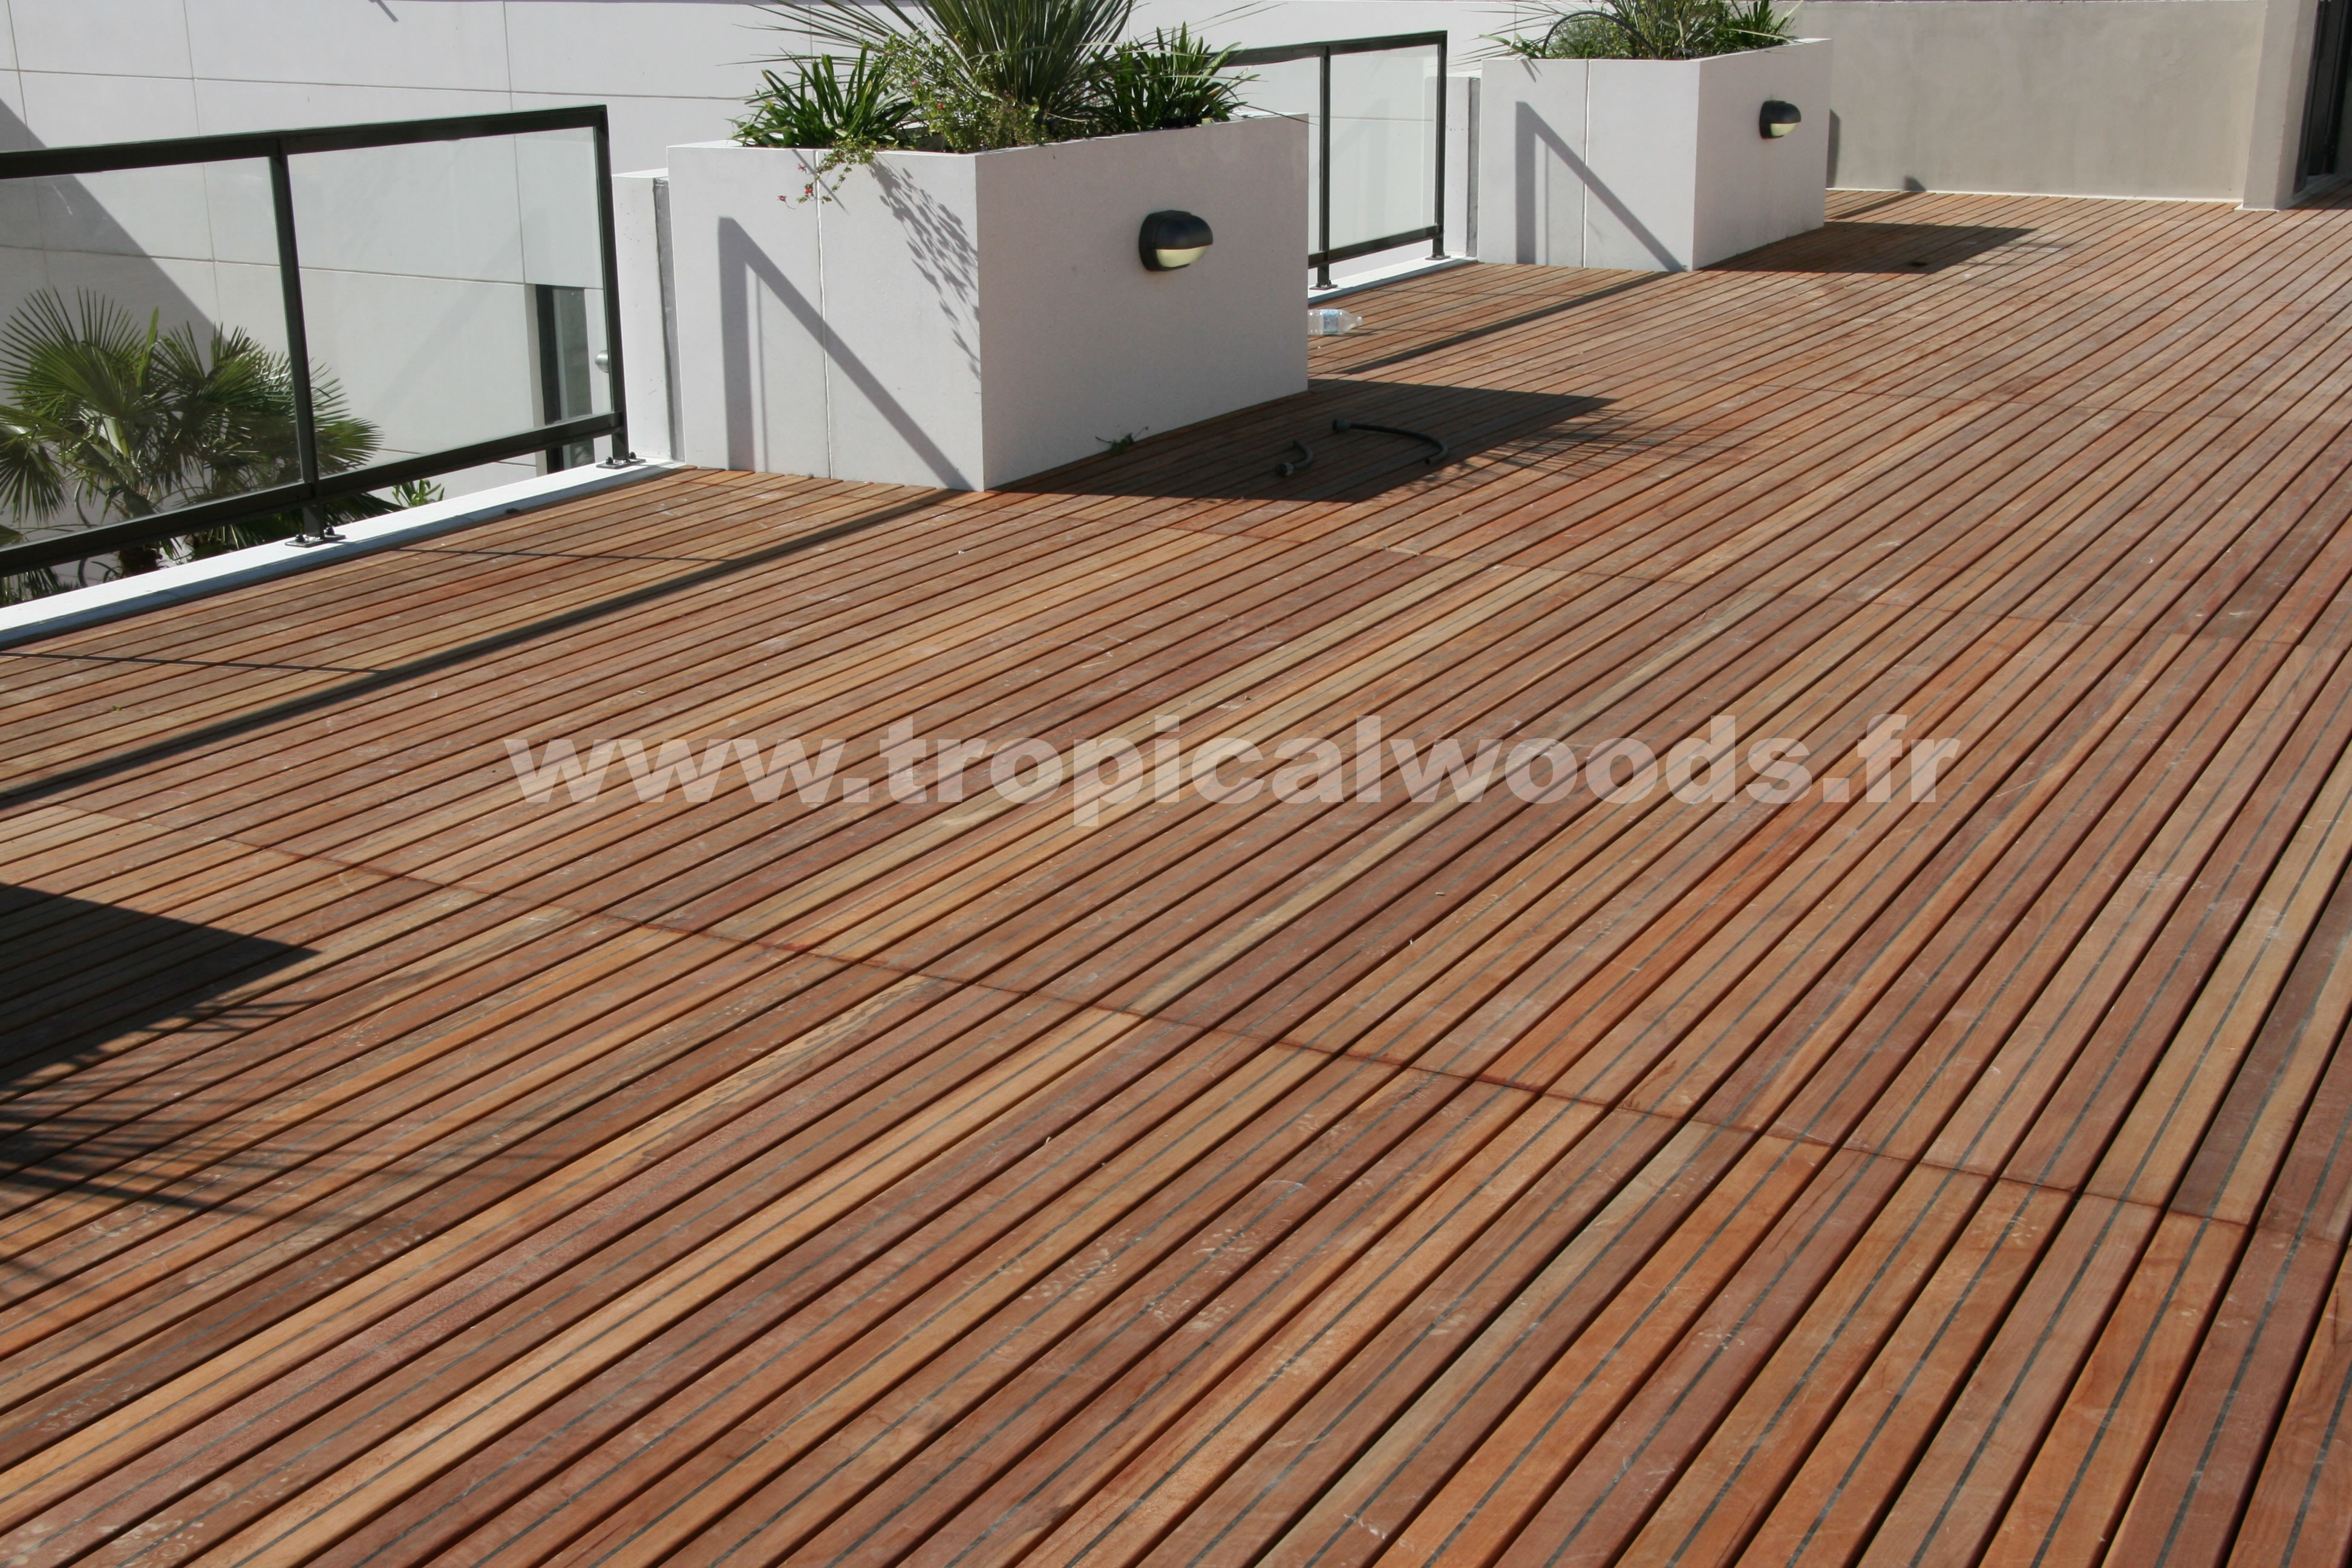 terrasse lames parquet massif chene pont de bateau 22 x 120 mm premier choix. Black Bedroom Furniture Sets. Home Design Ideas